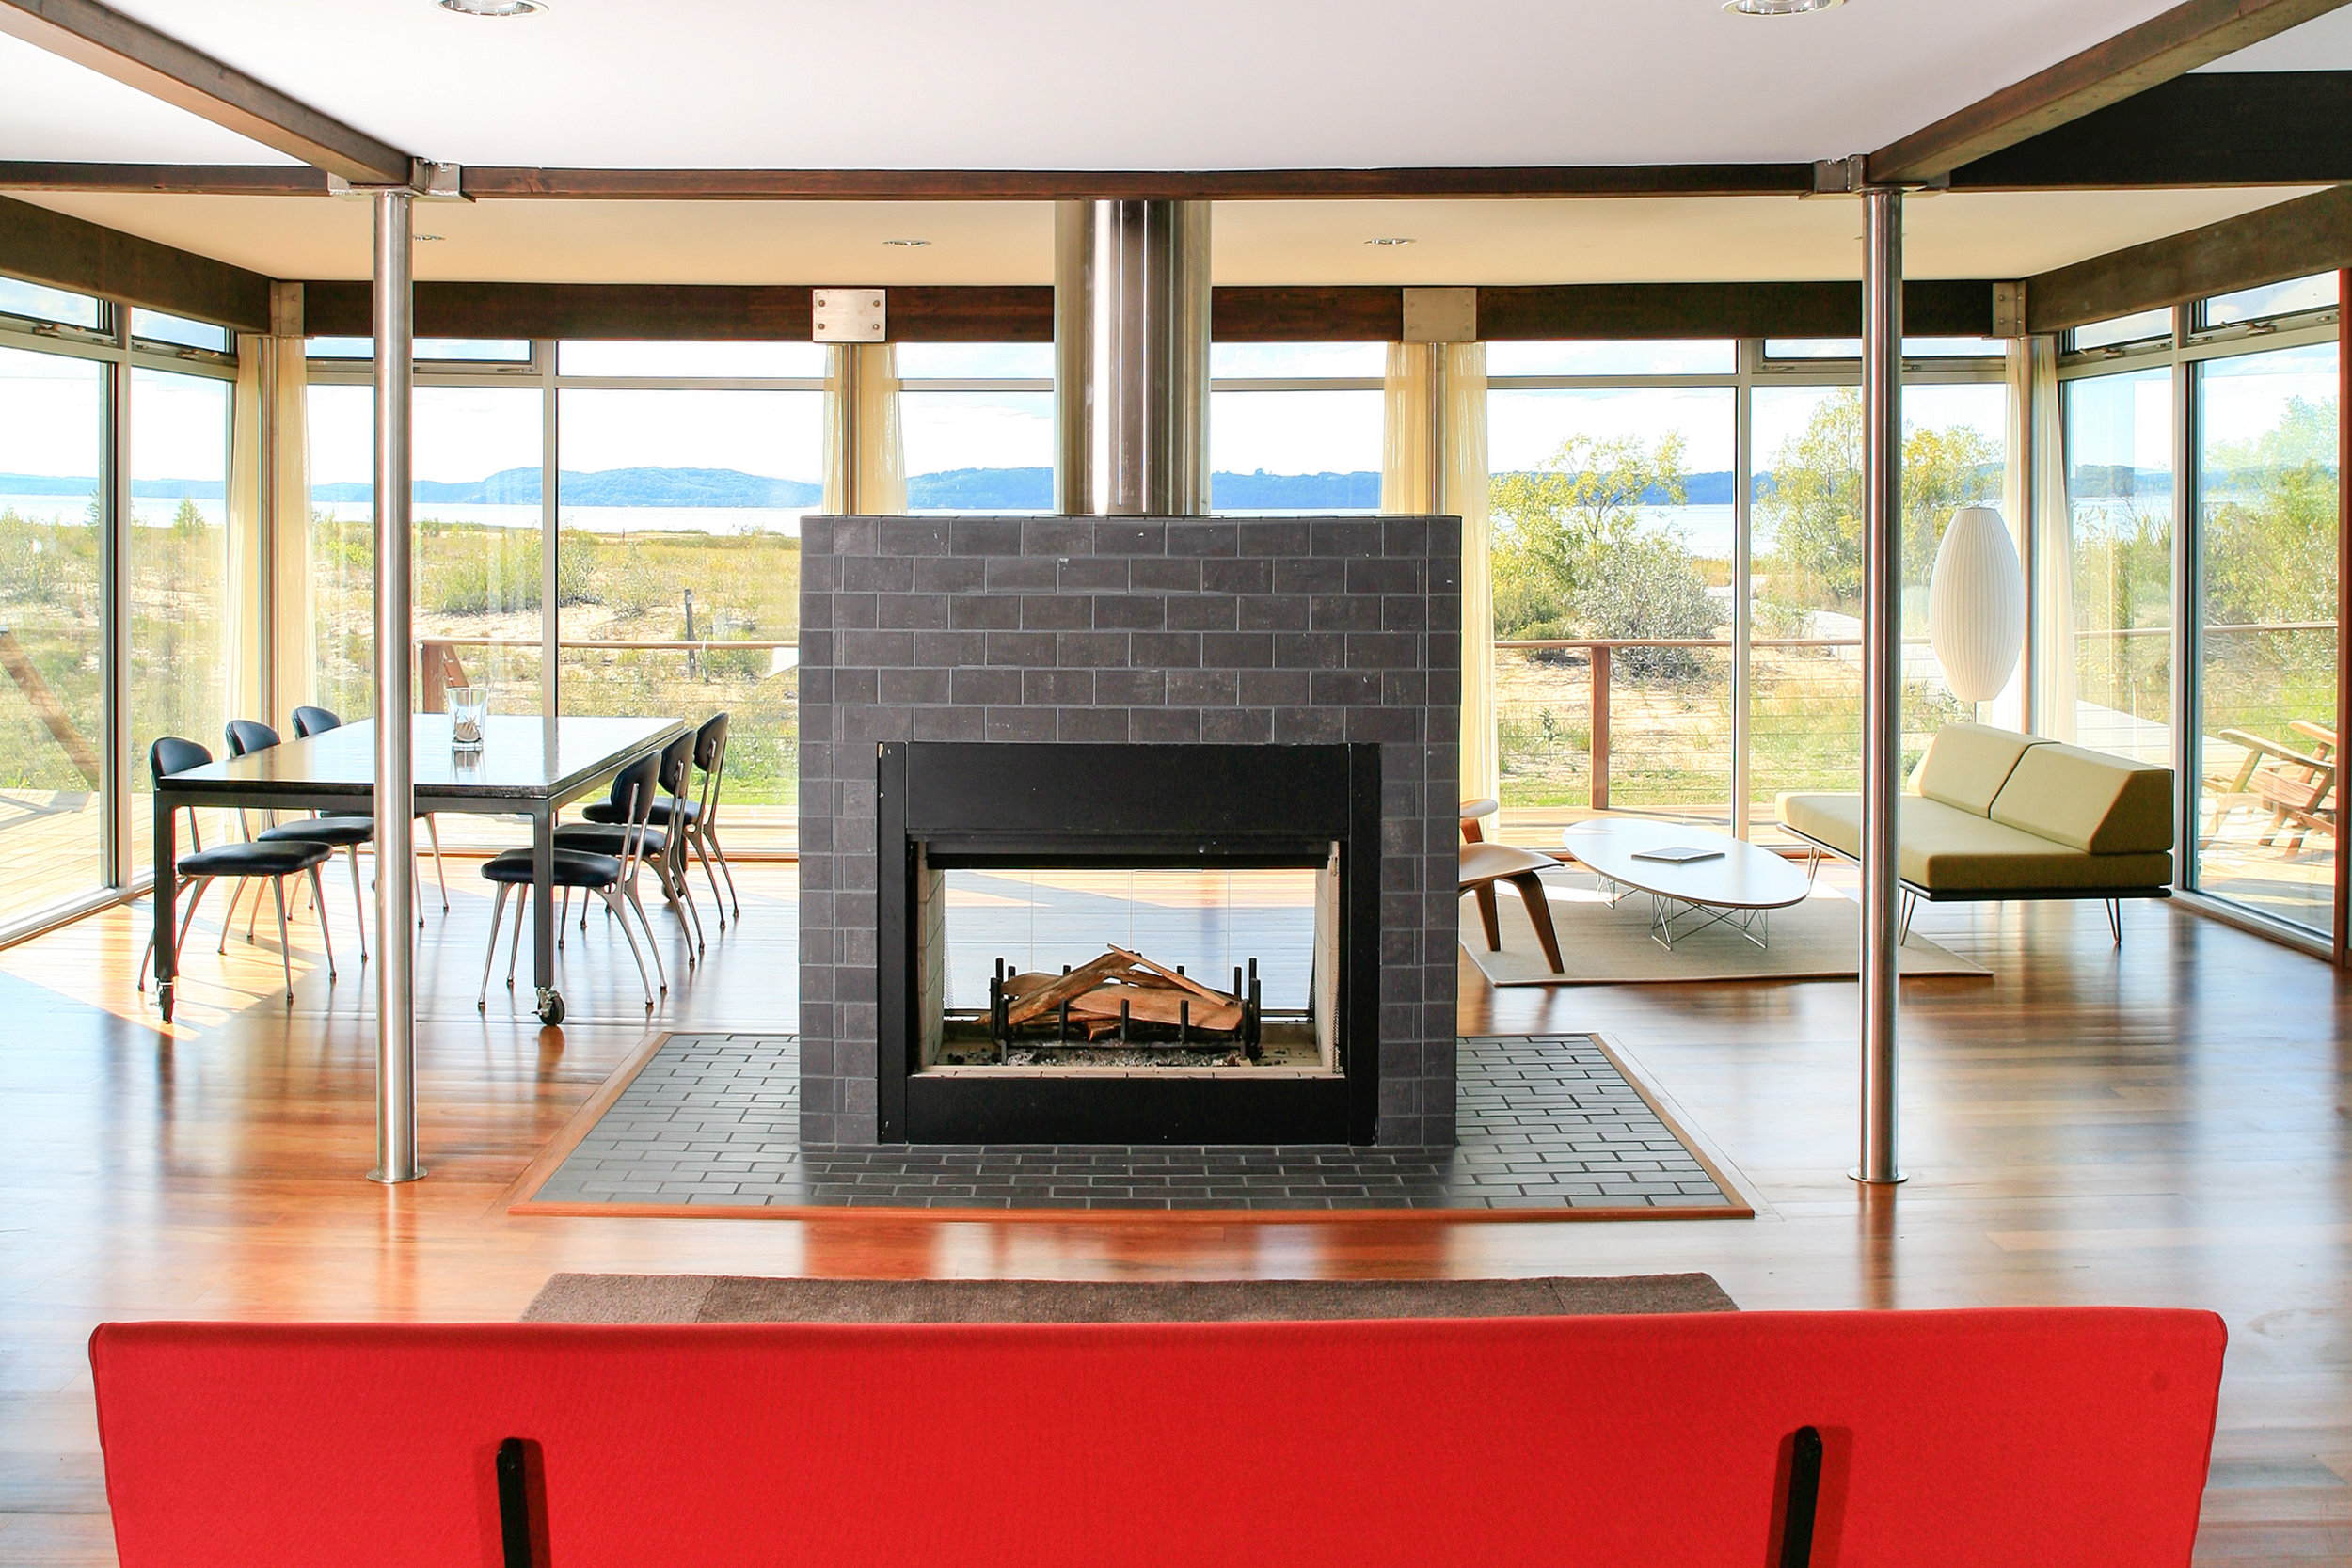 CARLSON CABANA LR FIREPLACE - OOMBRA ARCHITECTS